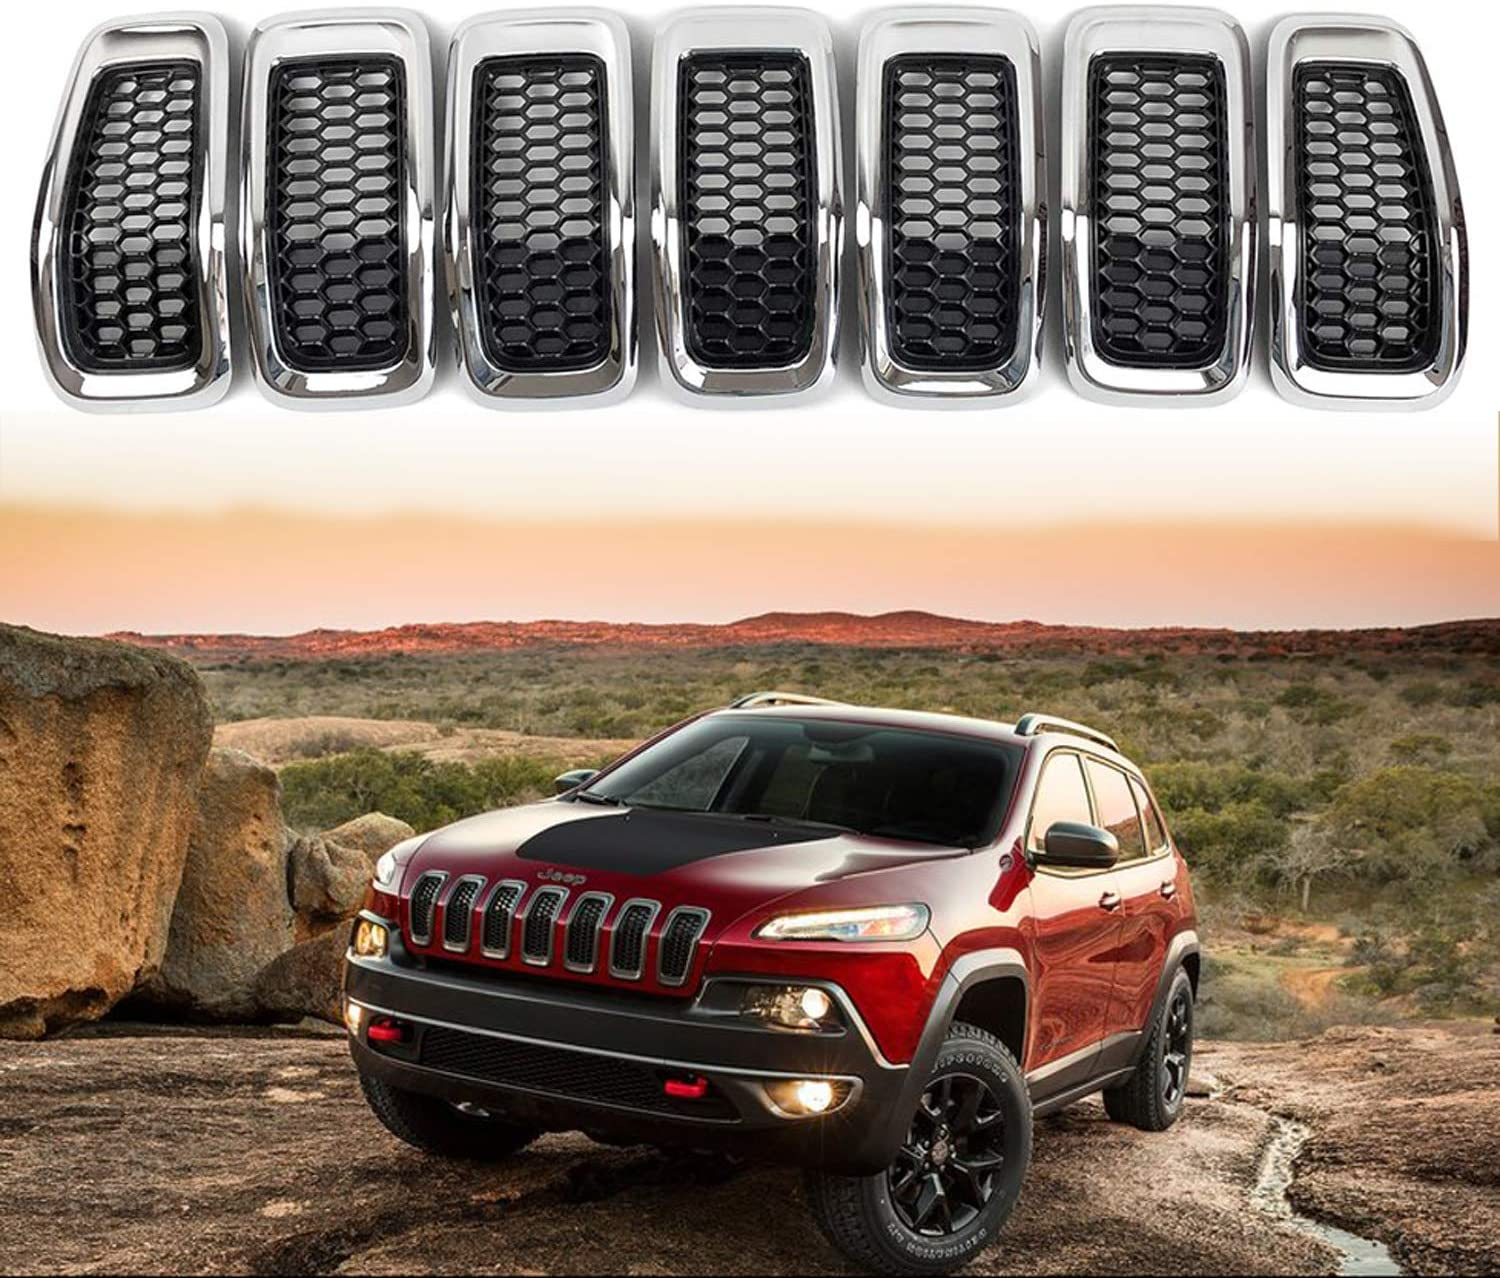 YAV Grill Inserts Grille Insert for Jeep Cherokee 2014 2015 2016 2017 2018 Black Grille Honeycomb Mesh with Chrome Rings Accessories 7pcs